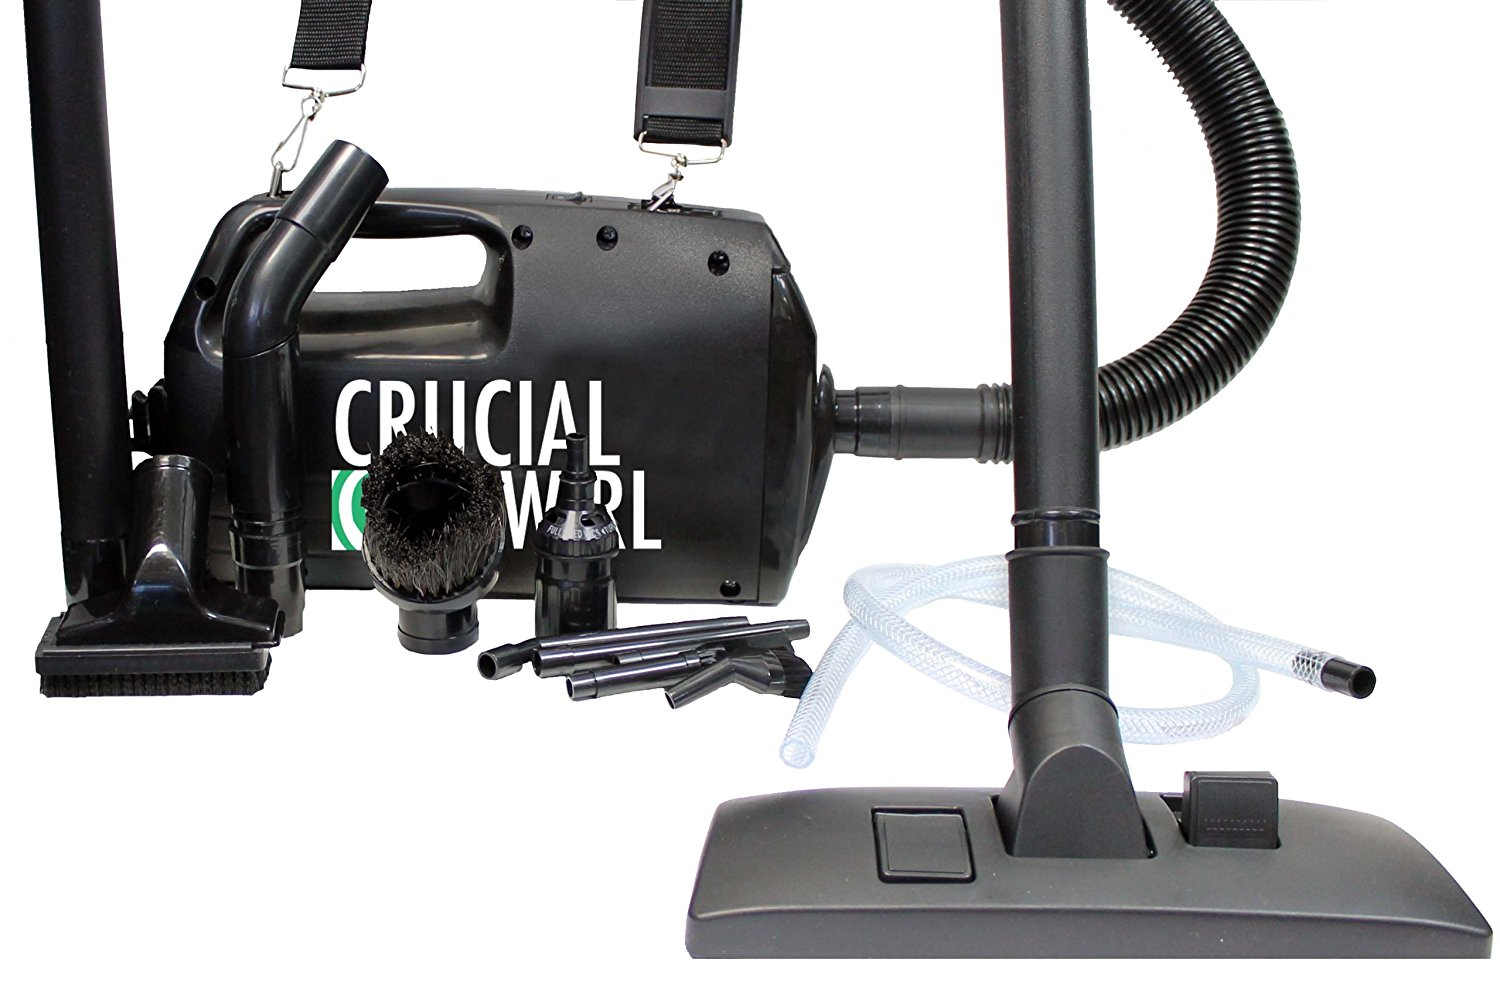 Crucial Swirl Powerful Vacuum Cleaner